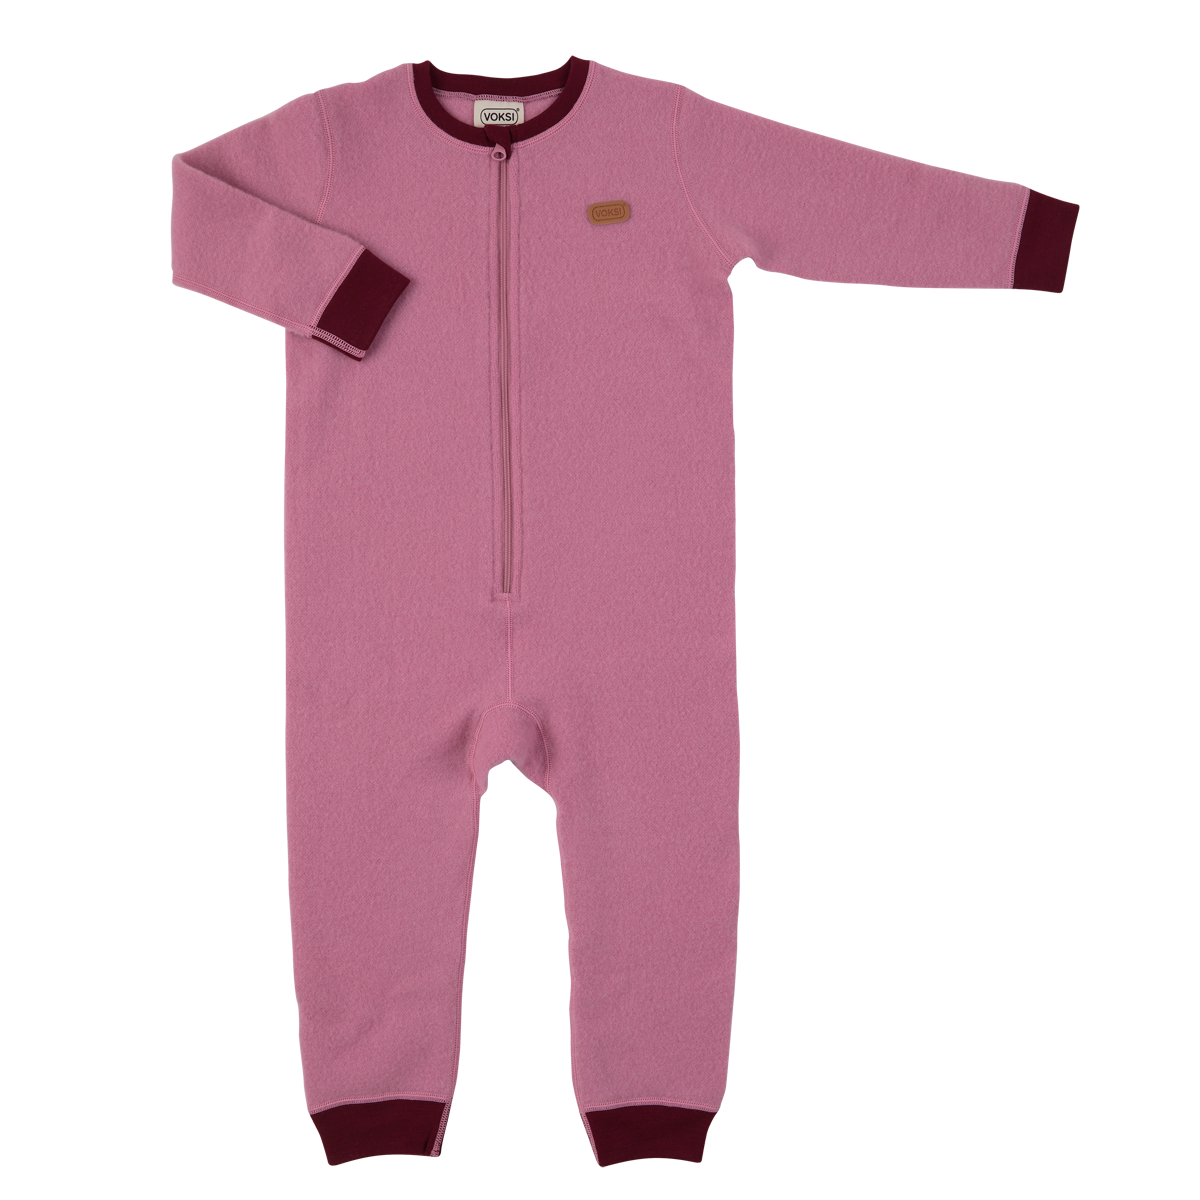 Voksi  meriinovillane jumpsuit  Double Fleece roosa